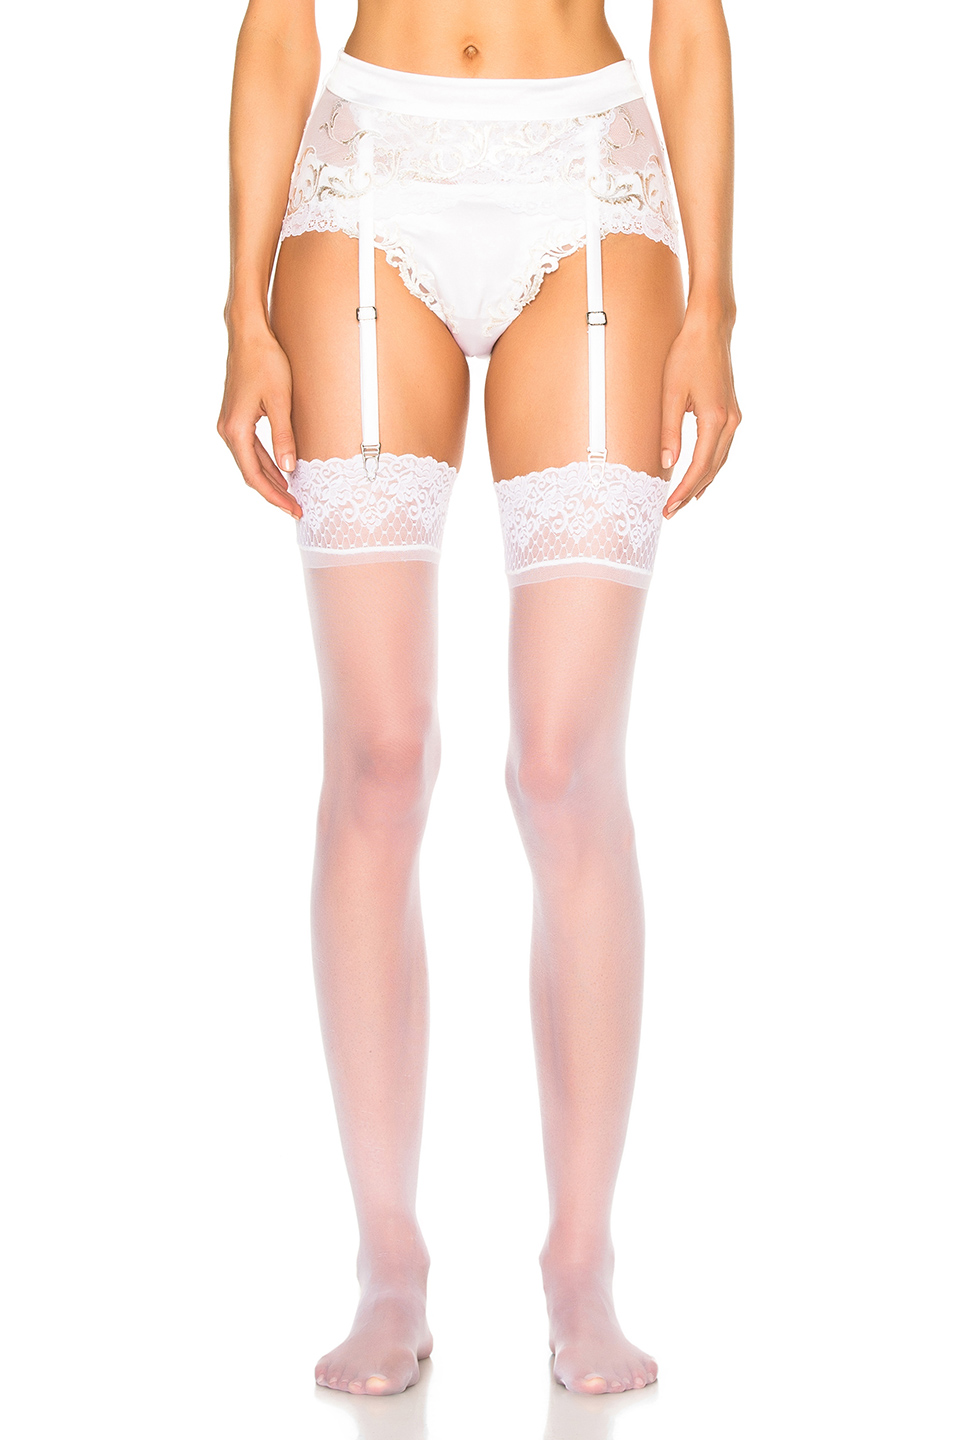 Photo of La Perla Secret Story Garter in White online sales